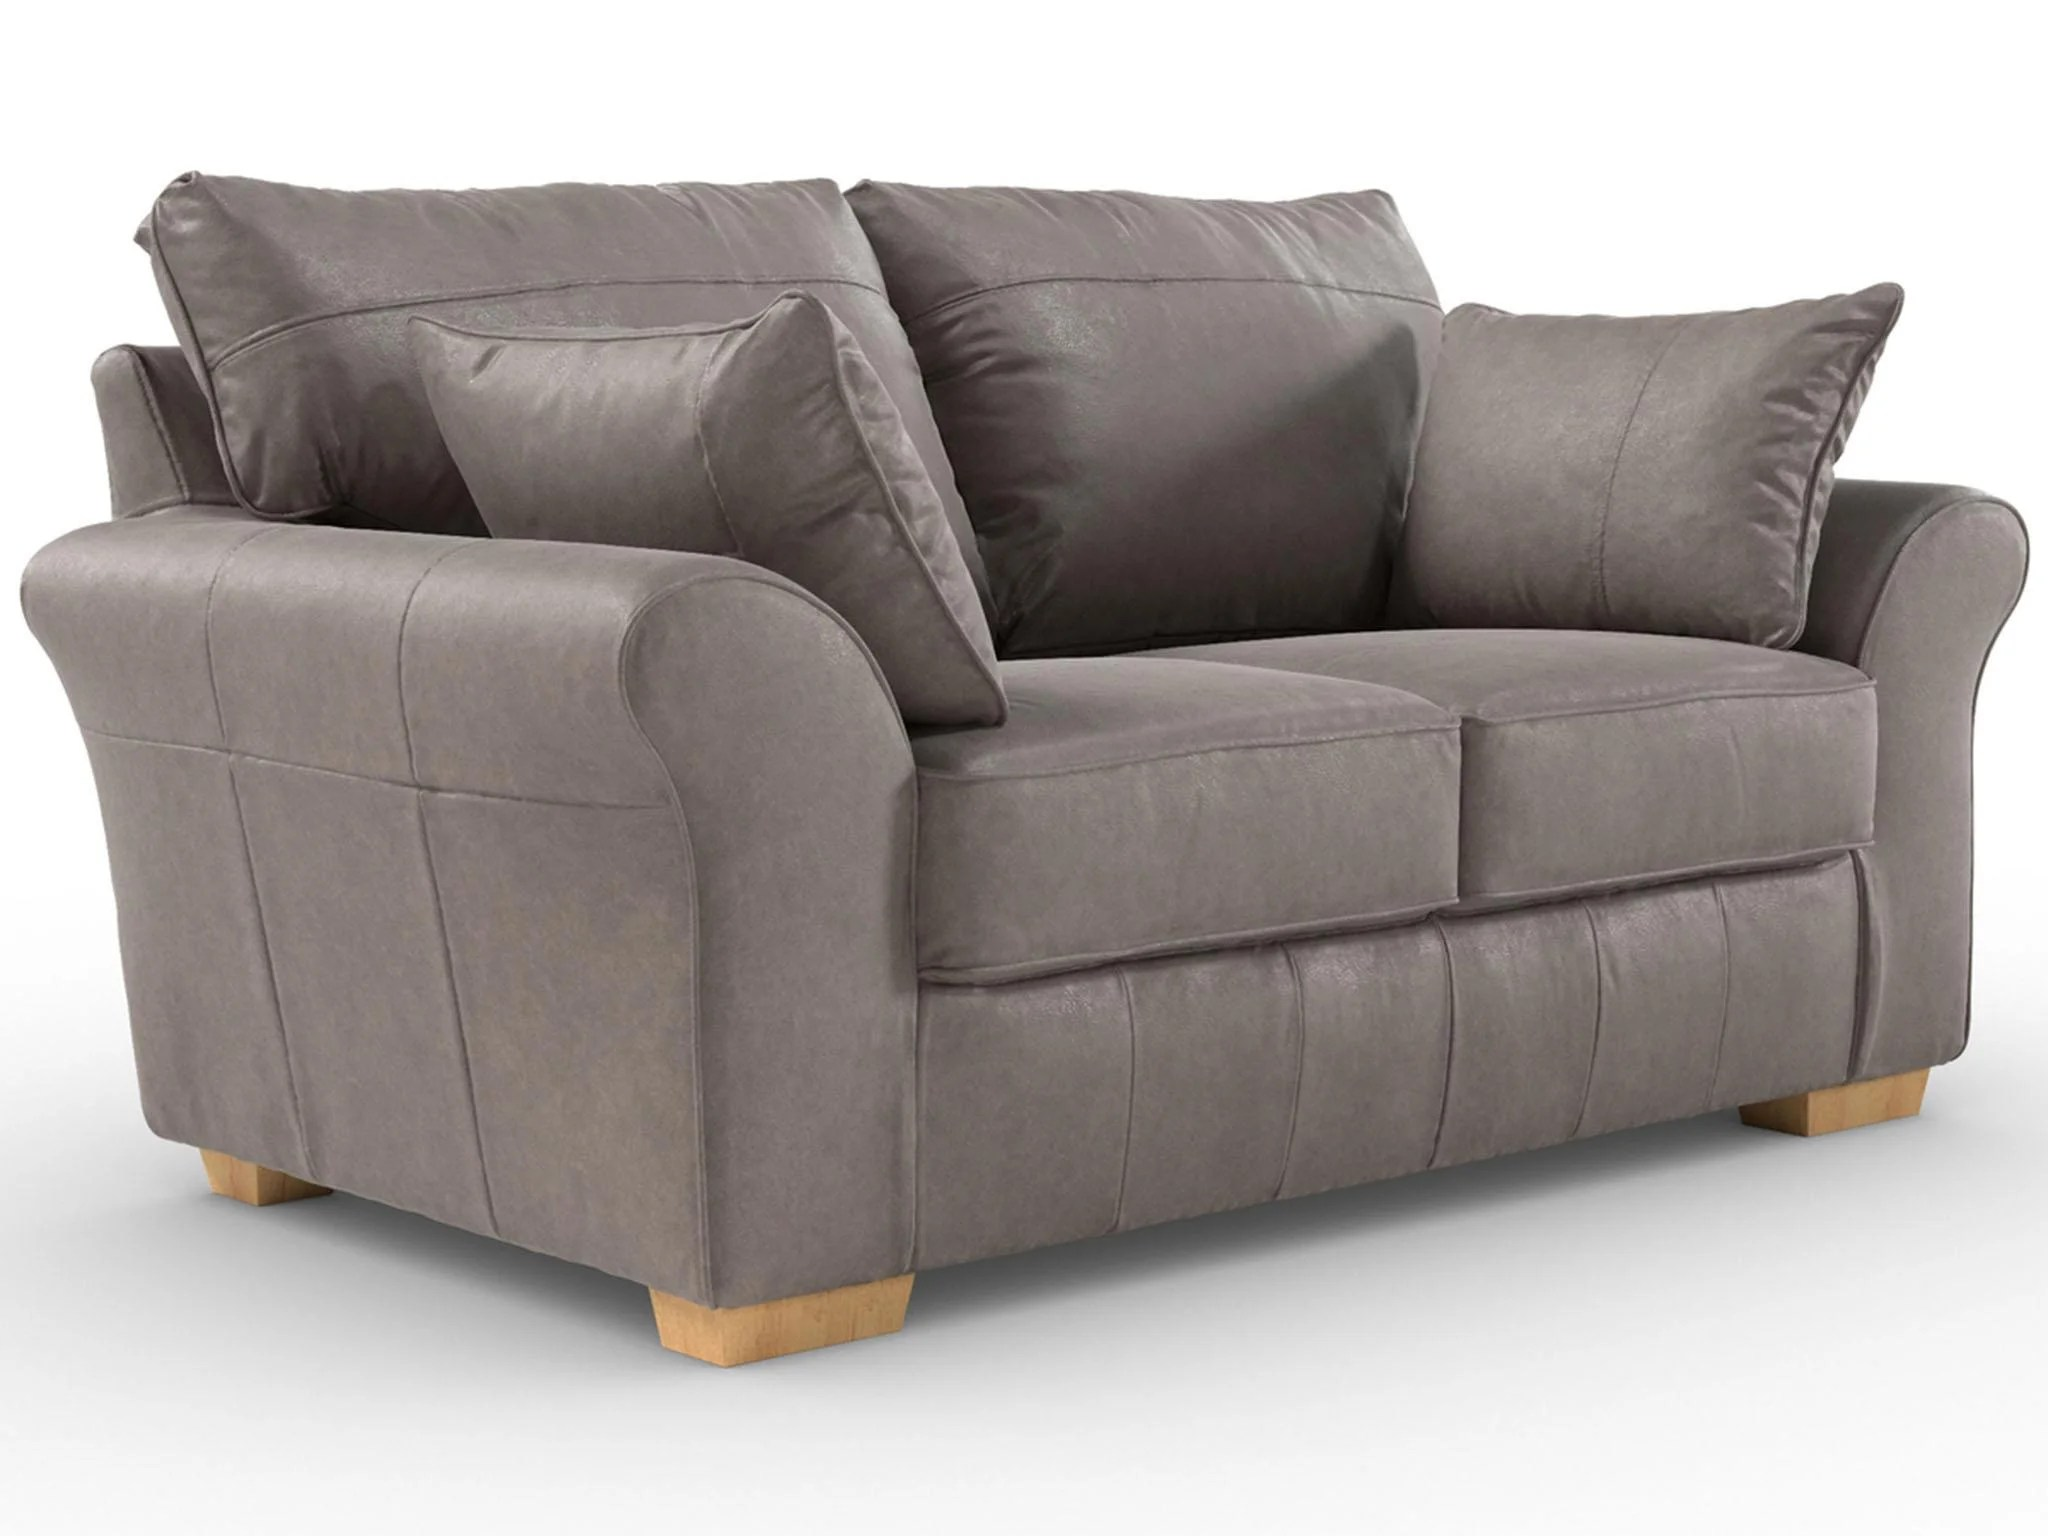 Next Sofa Measurements 10 Best Leather Sofas The Independent